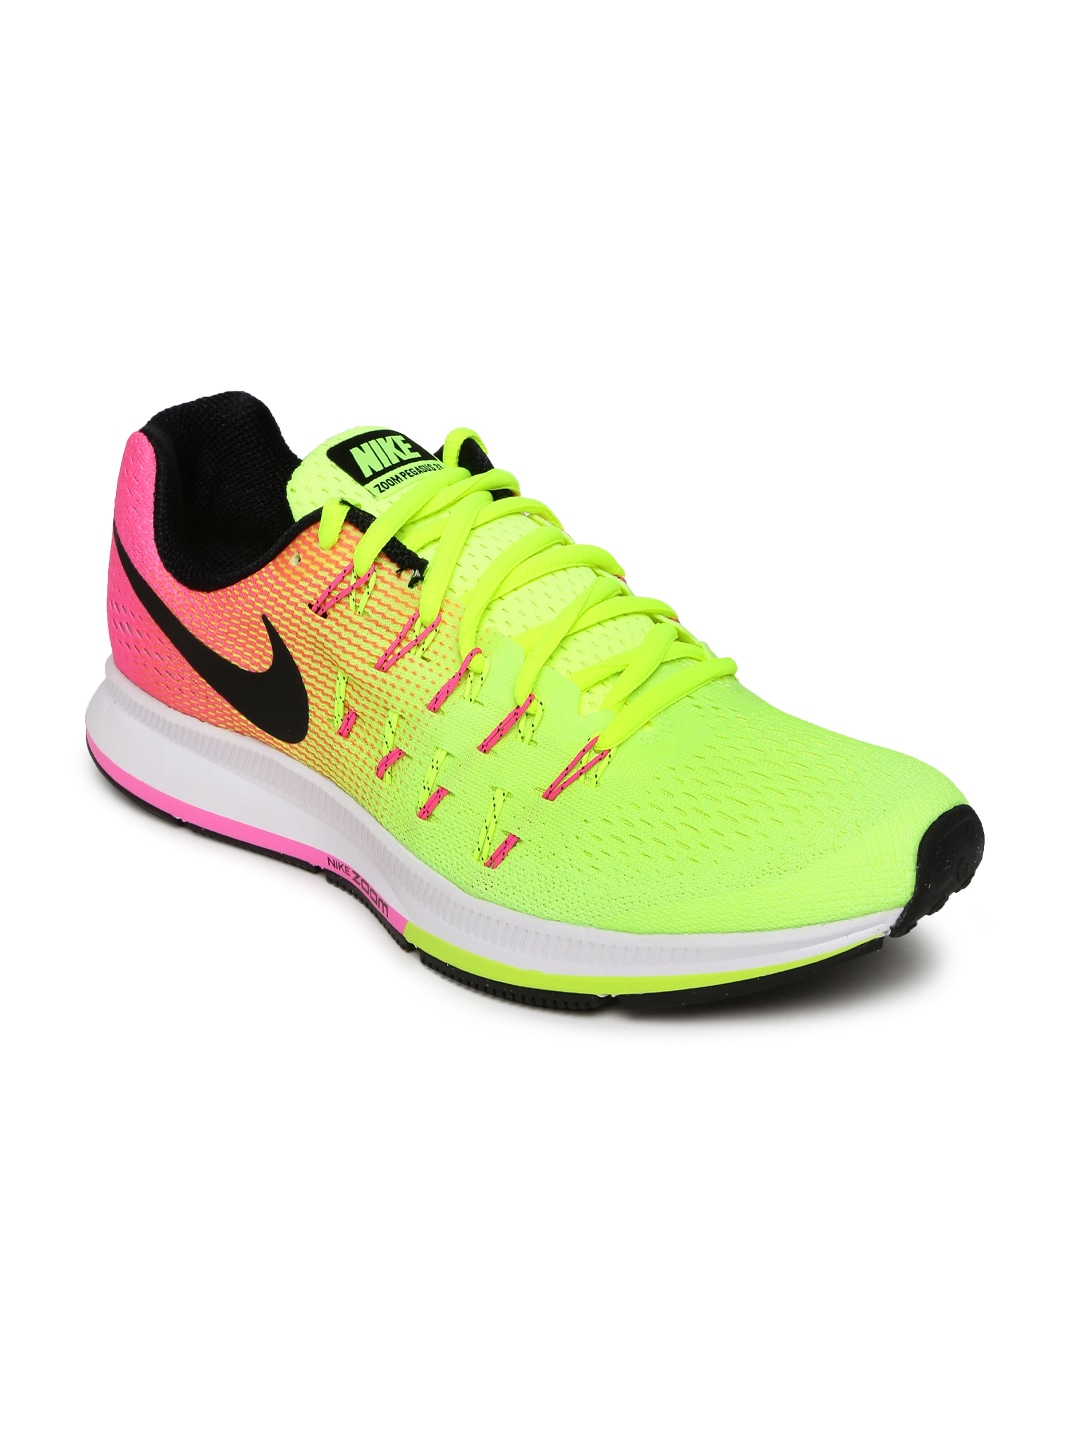 the latest d1a05 580b0 11469173771717-Nike -Men-Fluorescent-Green--Pink-AIR-ZOOM-PEGASUS-33-OC-Running-Shoes -7881469173771458-1.jpg